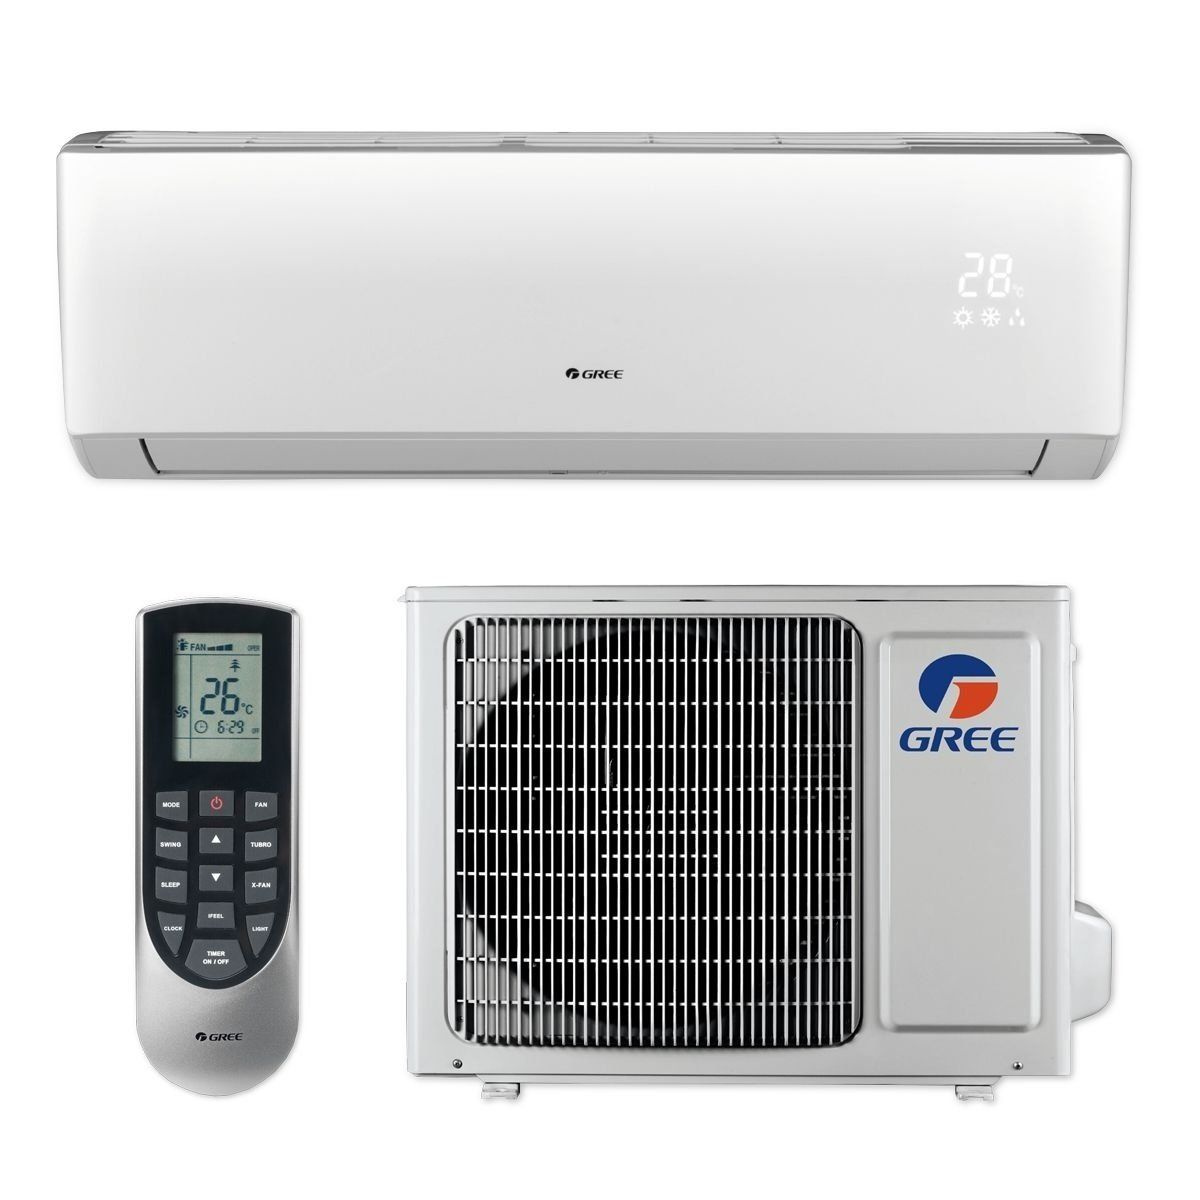 Gree Livs12hp115v1b 12 000 Btu 16 Seer Livo Wall Mount Ductless Mini Split A C Heat Pump 115v A C Heater Ductless Mini Split Ductless Heat Pump